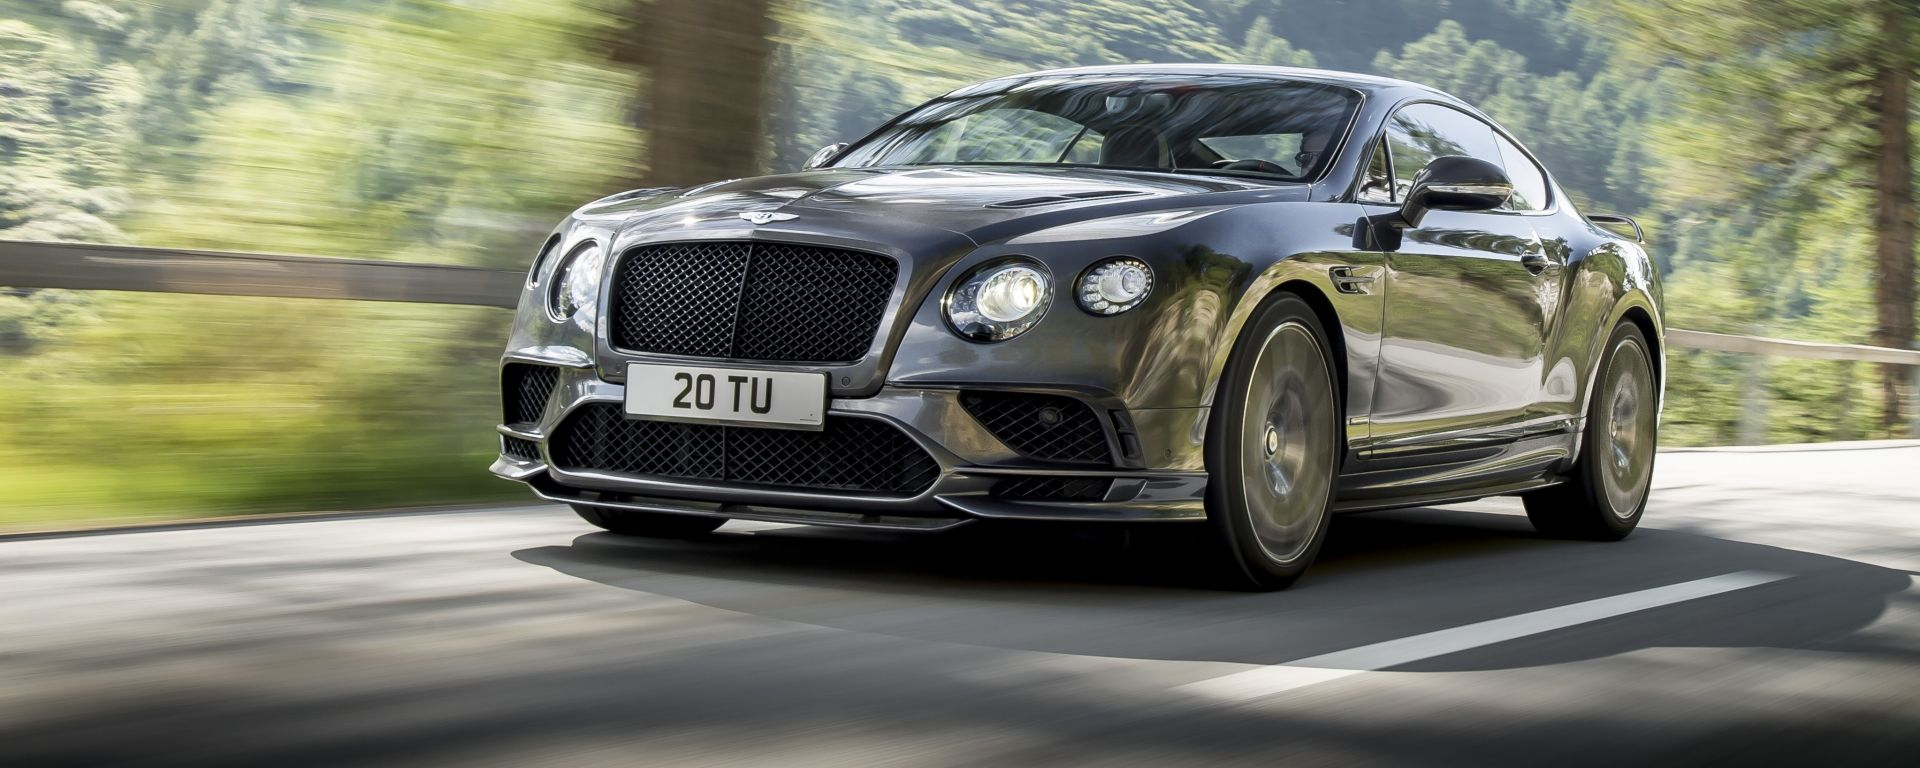 salone di detroit 2017  bentley continental supersports  1 017 nm di coppia per 710 cv  video